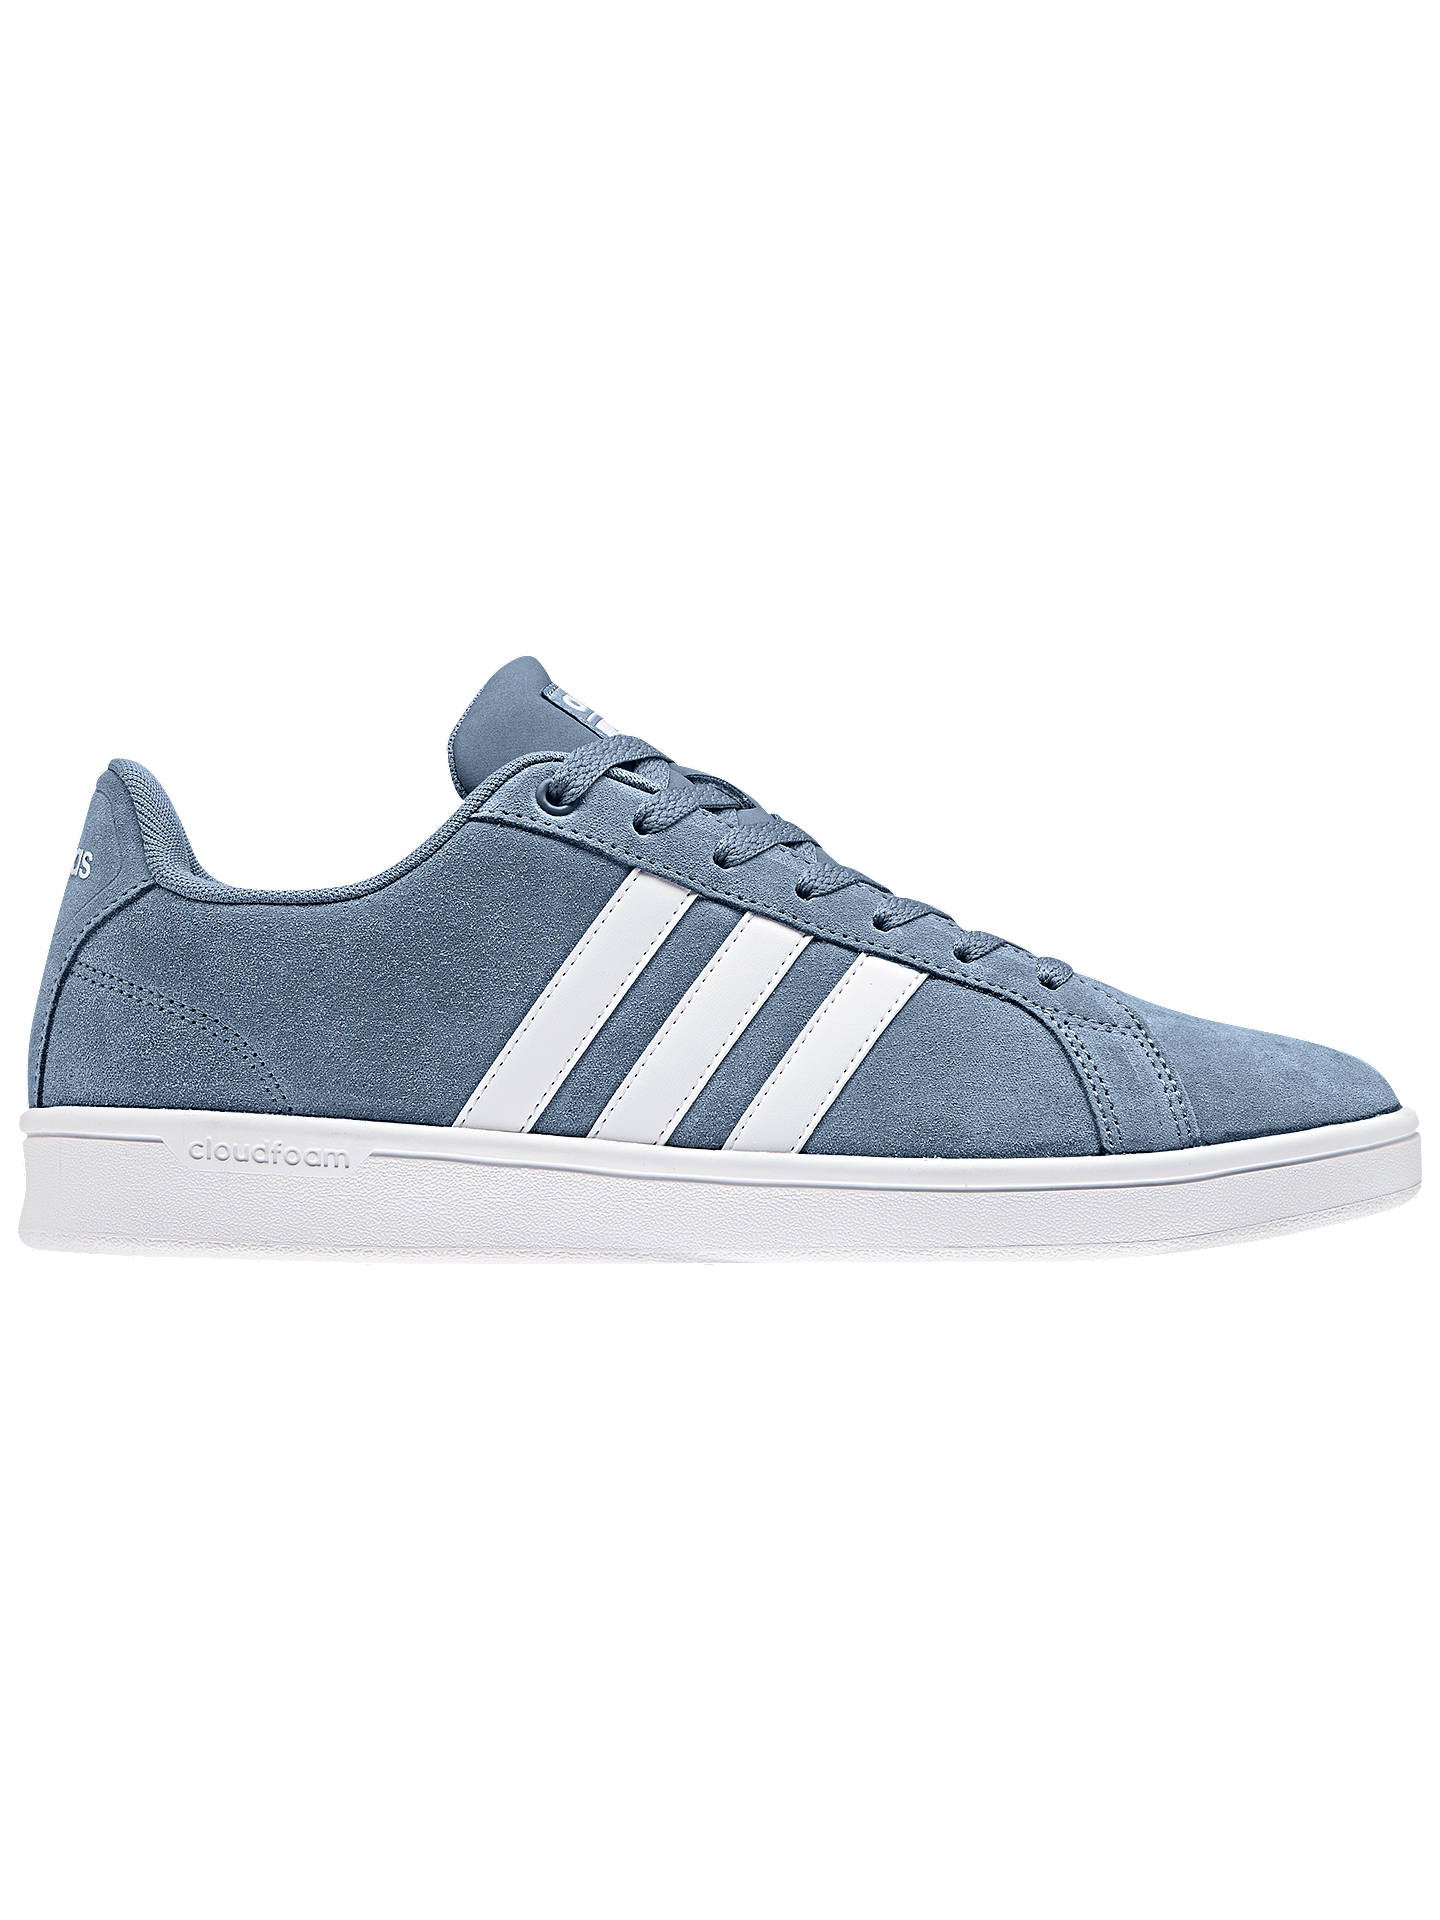 US Men's Adidas F99255 Sneakers Man Men's Shoes Trainers In